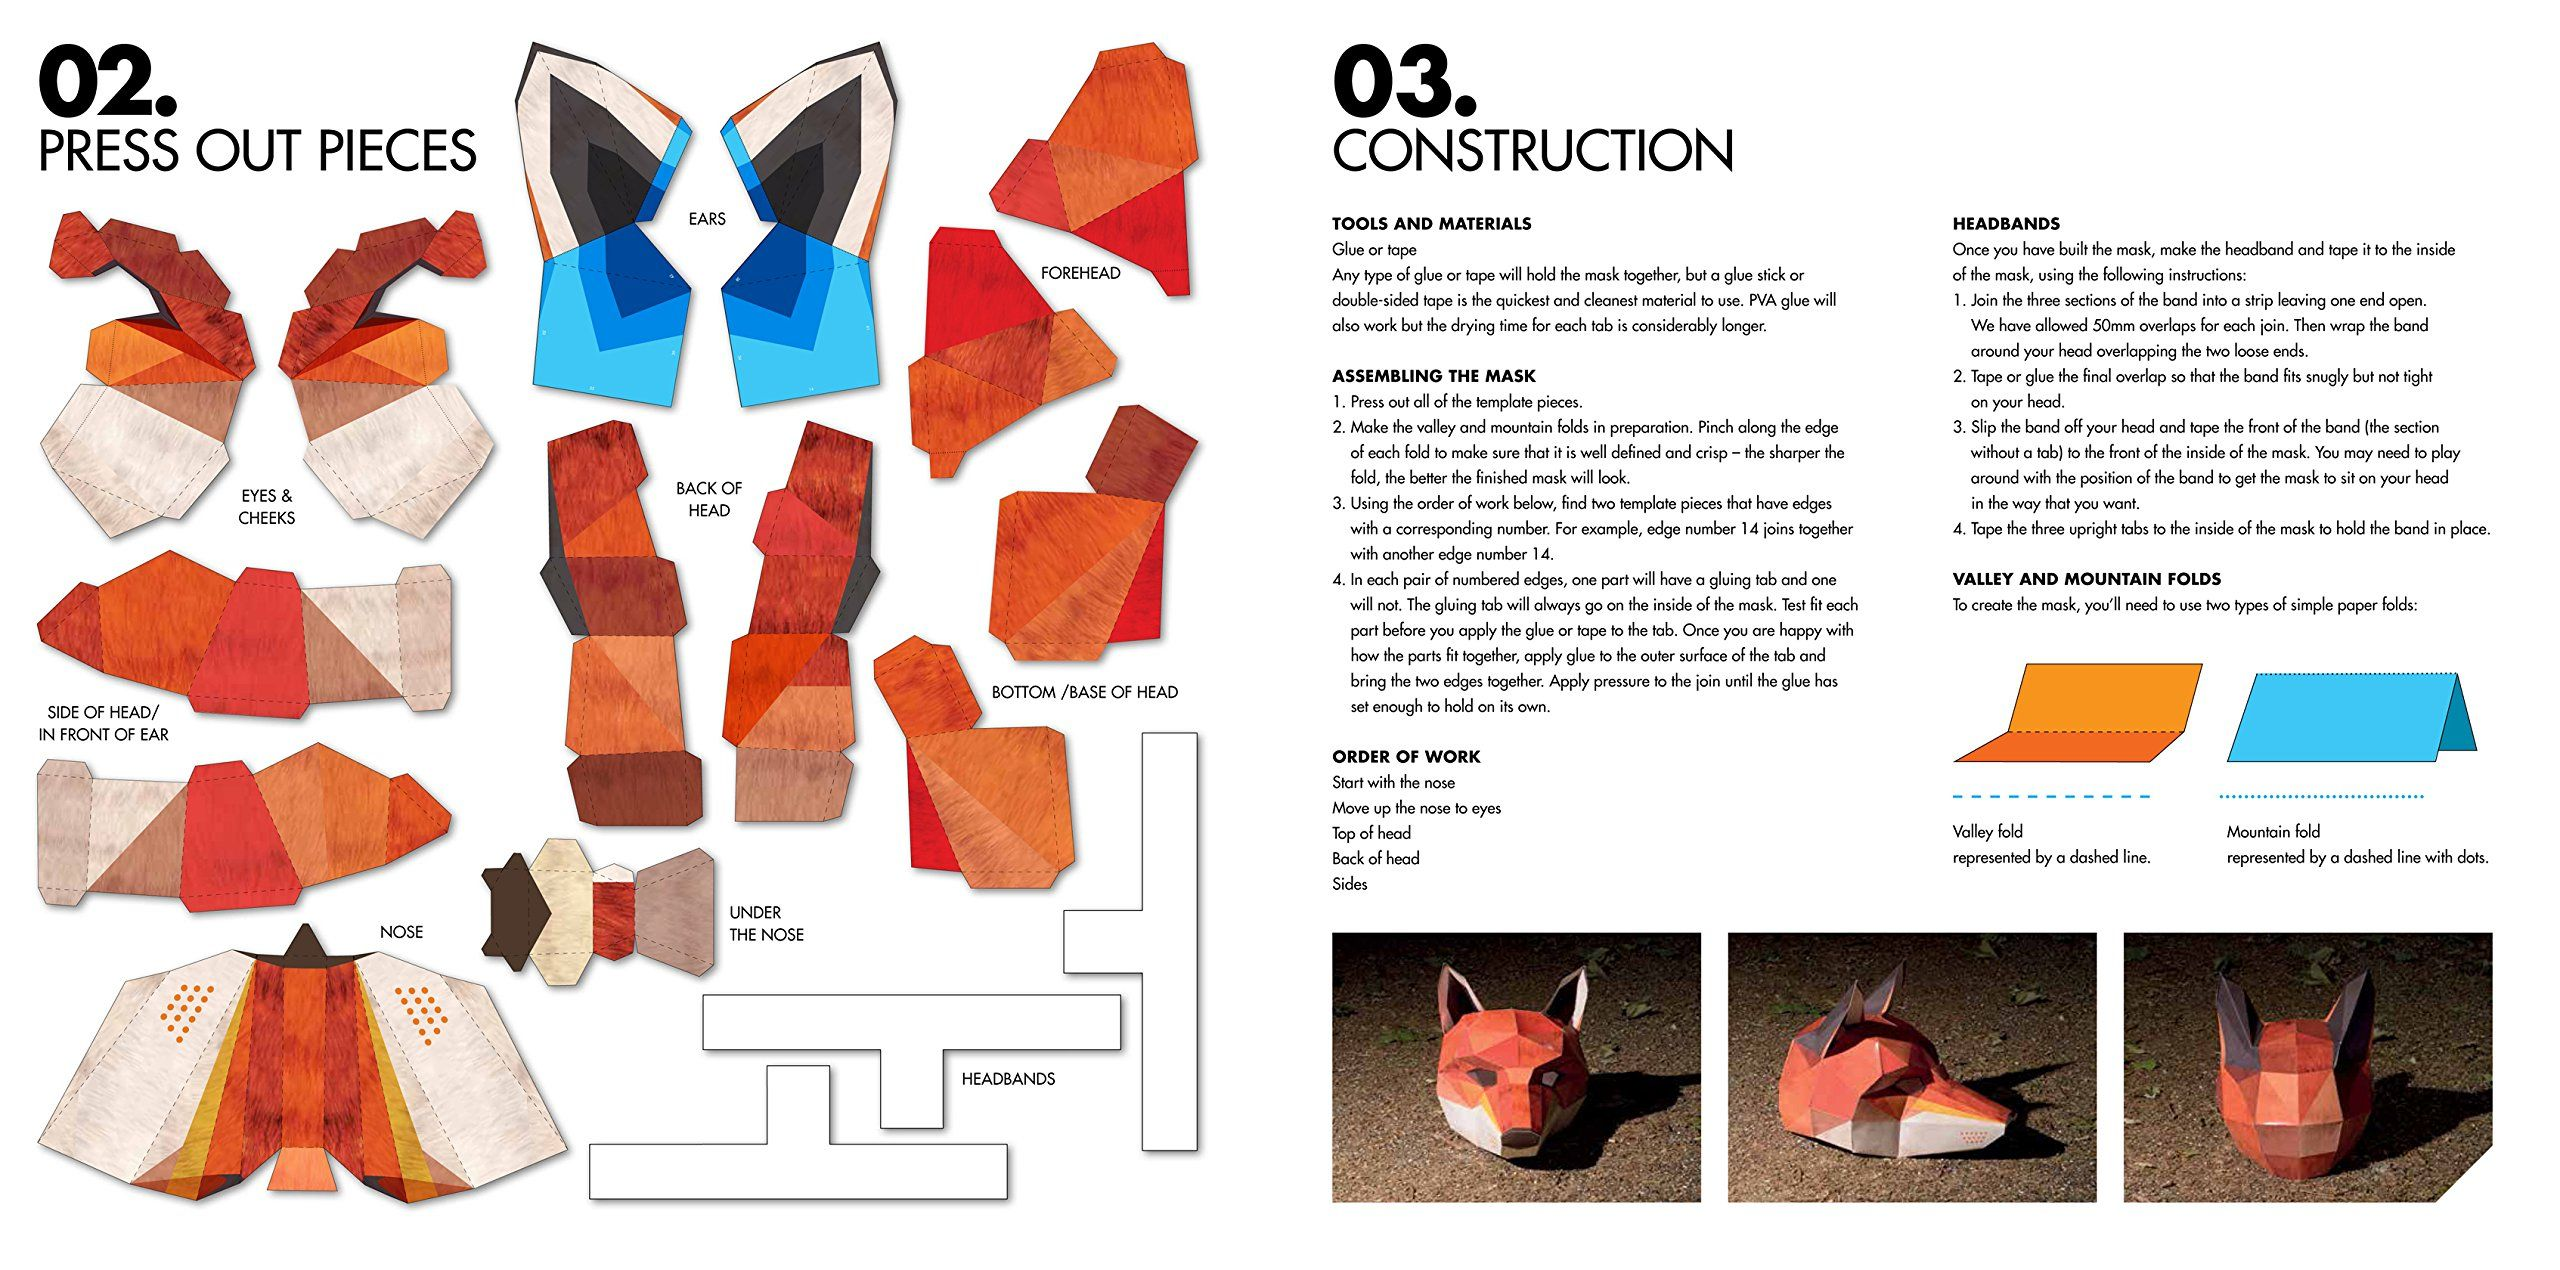 The Fox An Enchanting Press Out Mask For Parties Festivals Everyday Wear Steve Wintercroft 9781780977317 Amazon Books